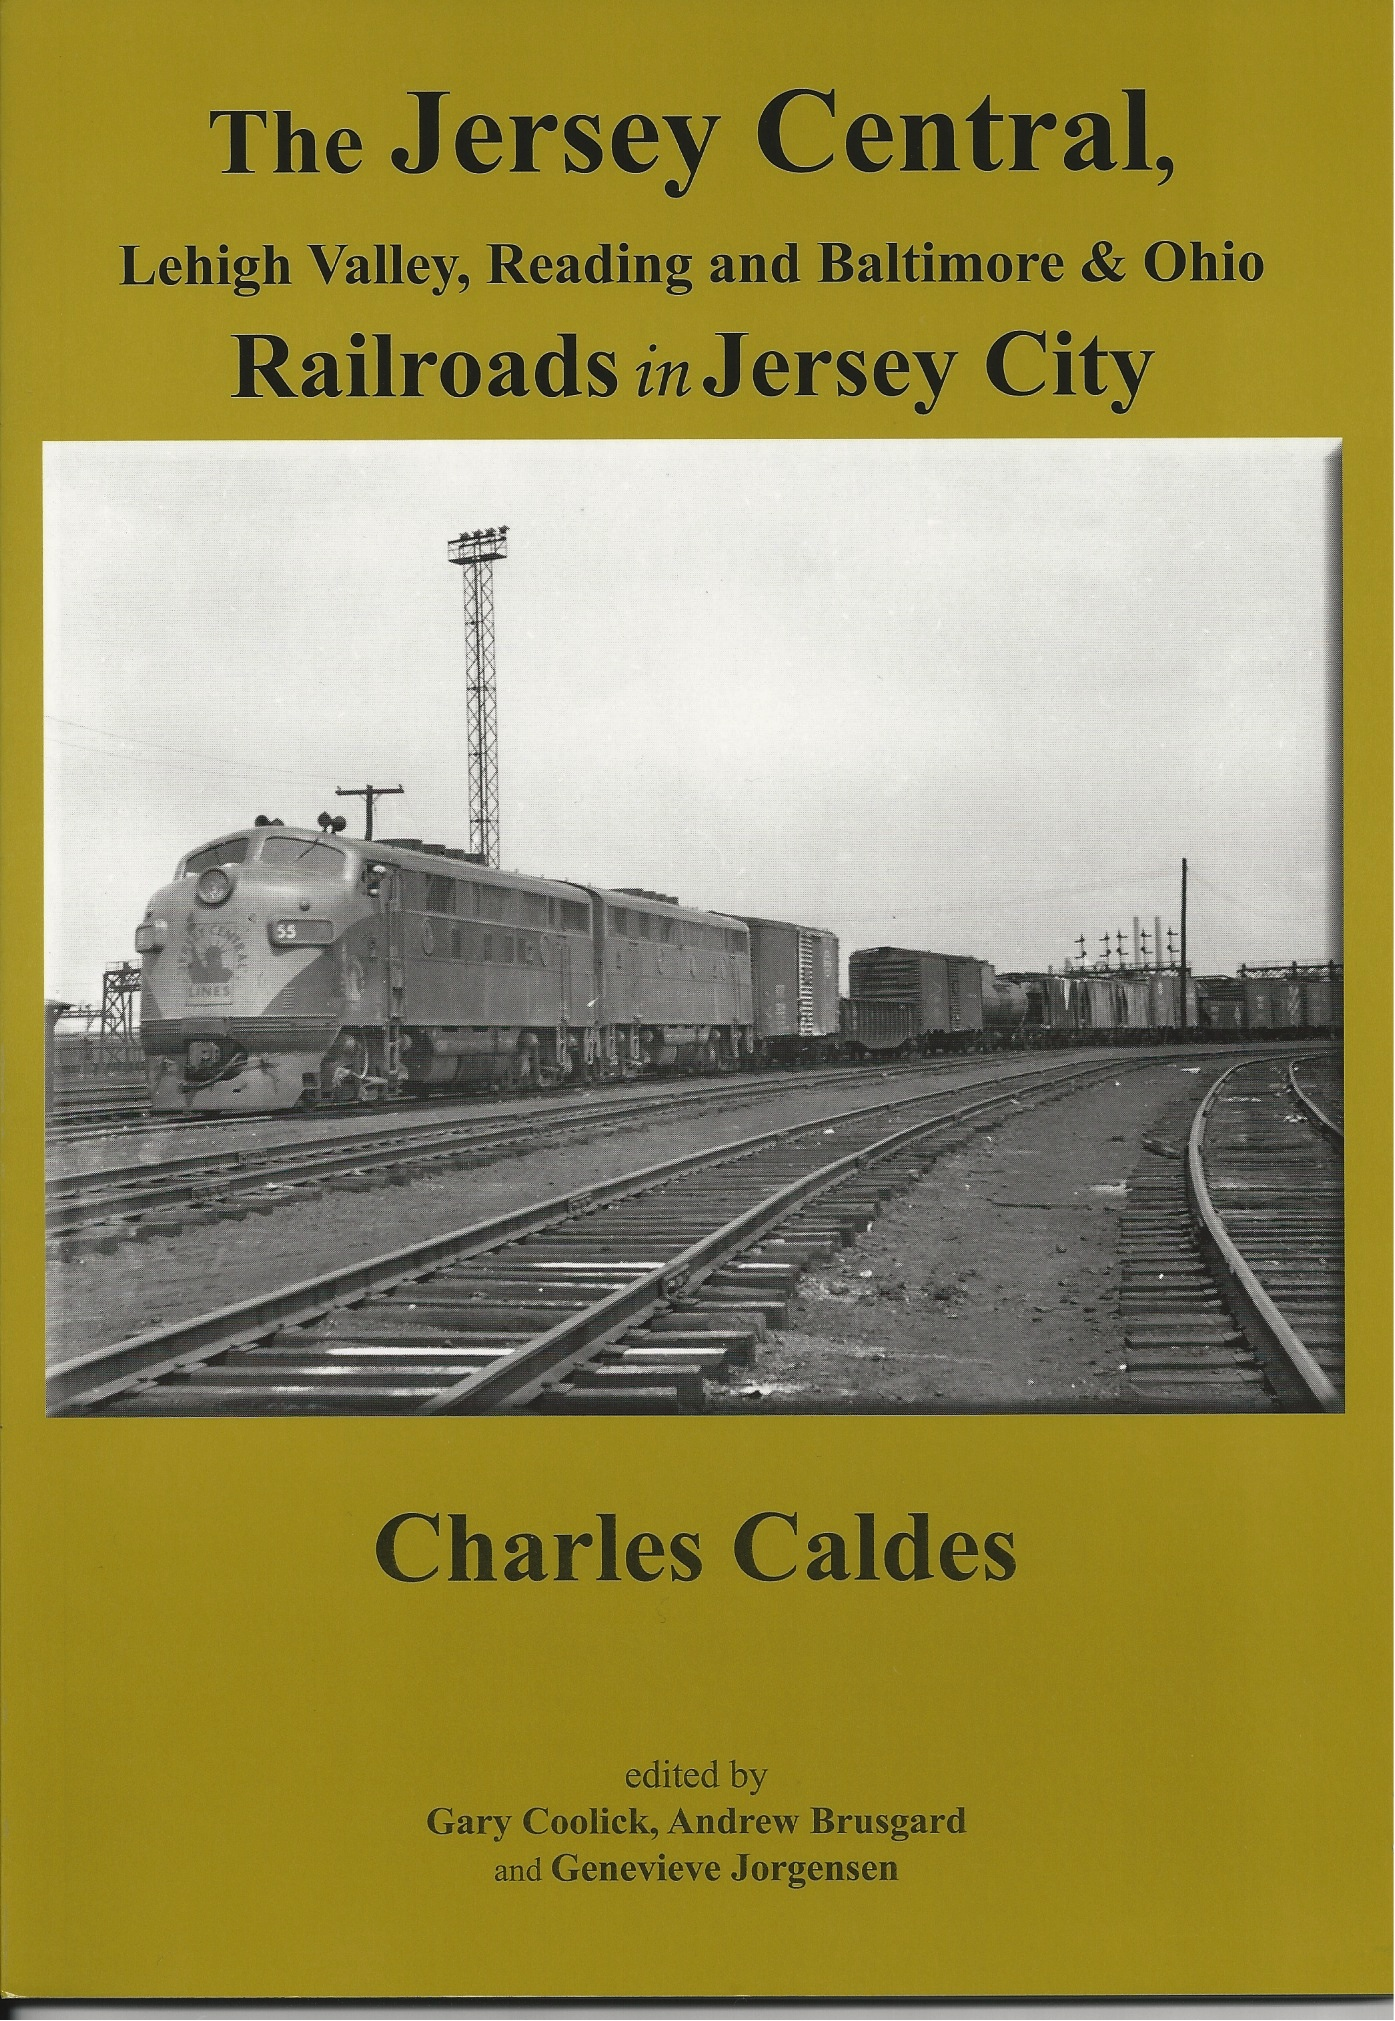 JERSEY CENTRAL, LEHIGH VALLEY, READING & BALTIMORE & OHIO RAILROADS IN JERSEY CITY